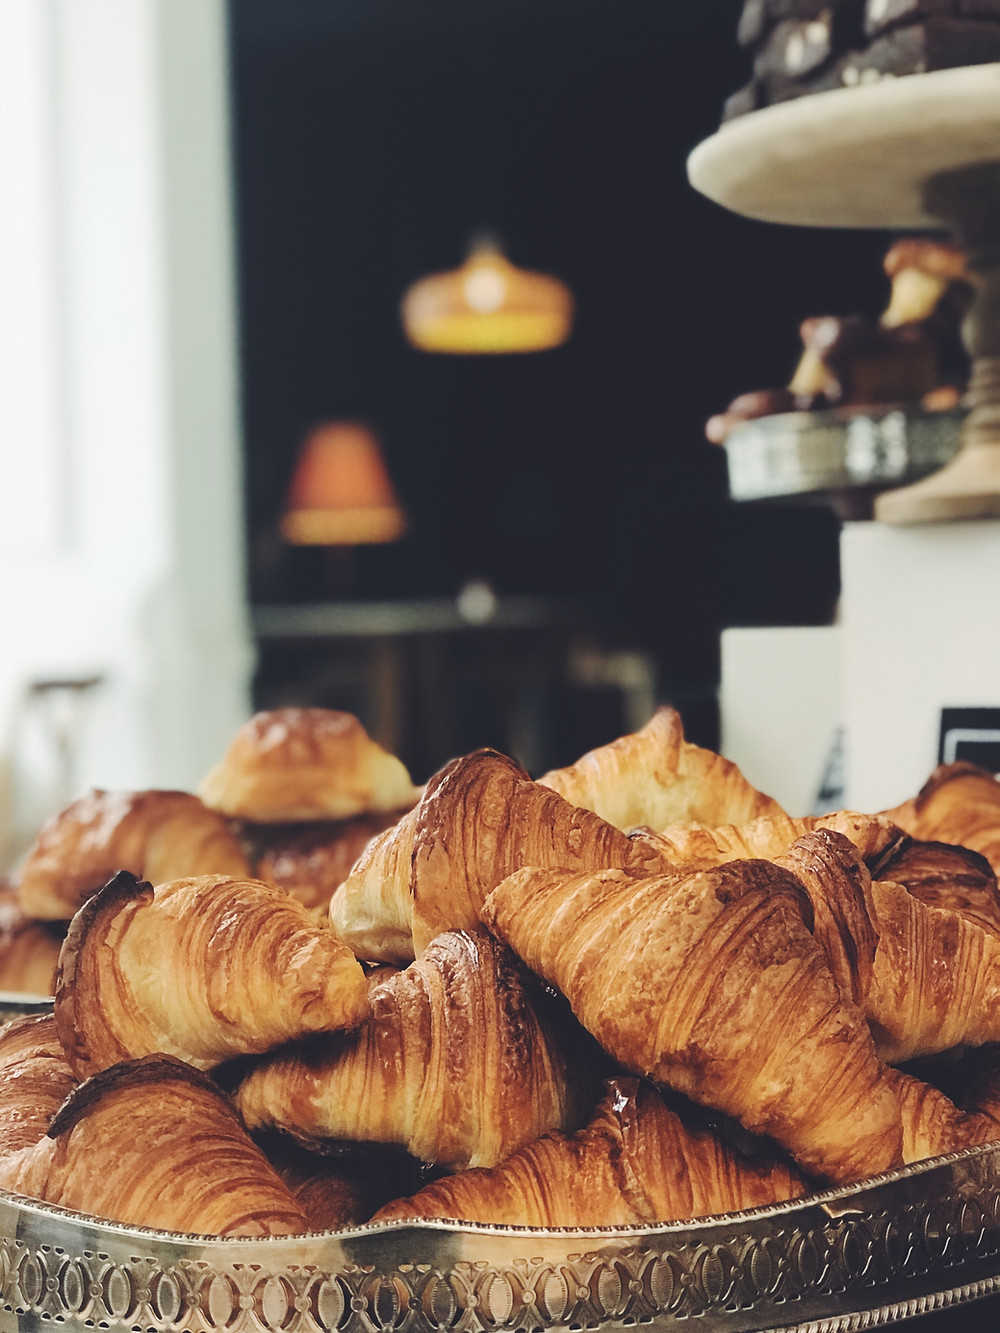 A stack of croissants in a bakery tray